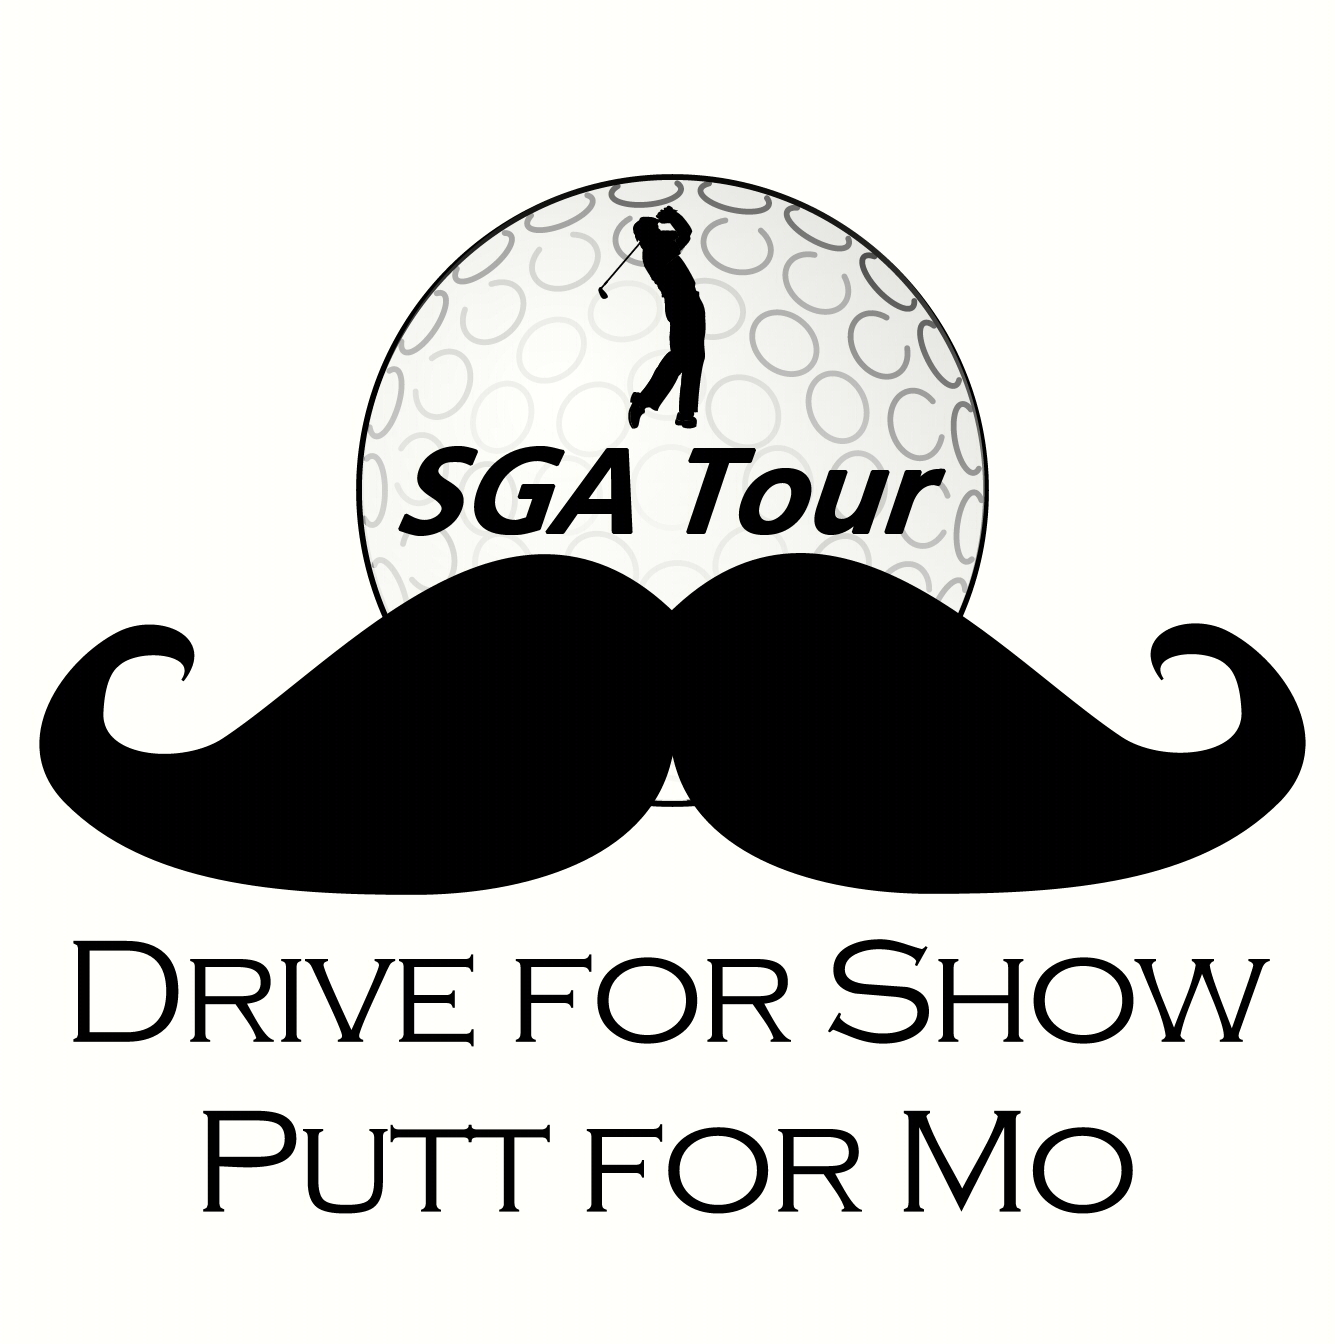 Drive for Show square logo